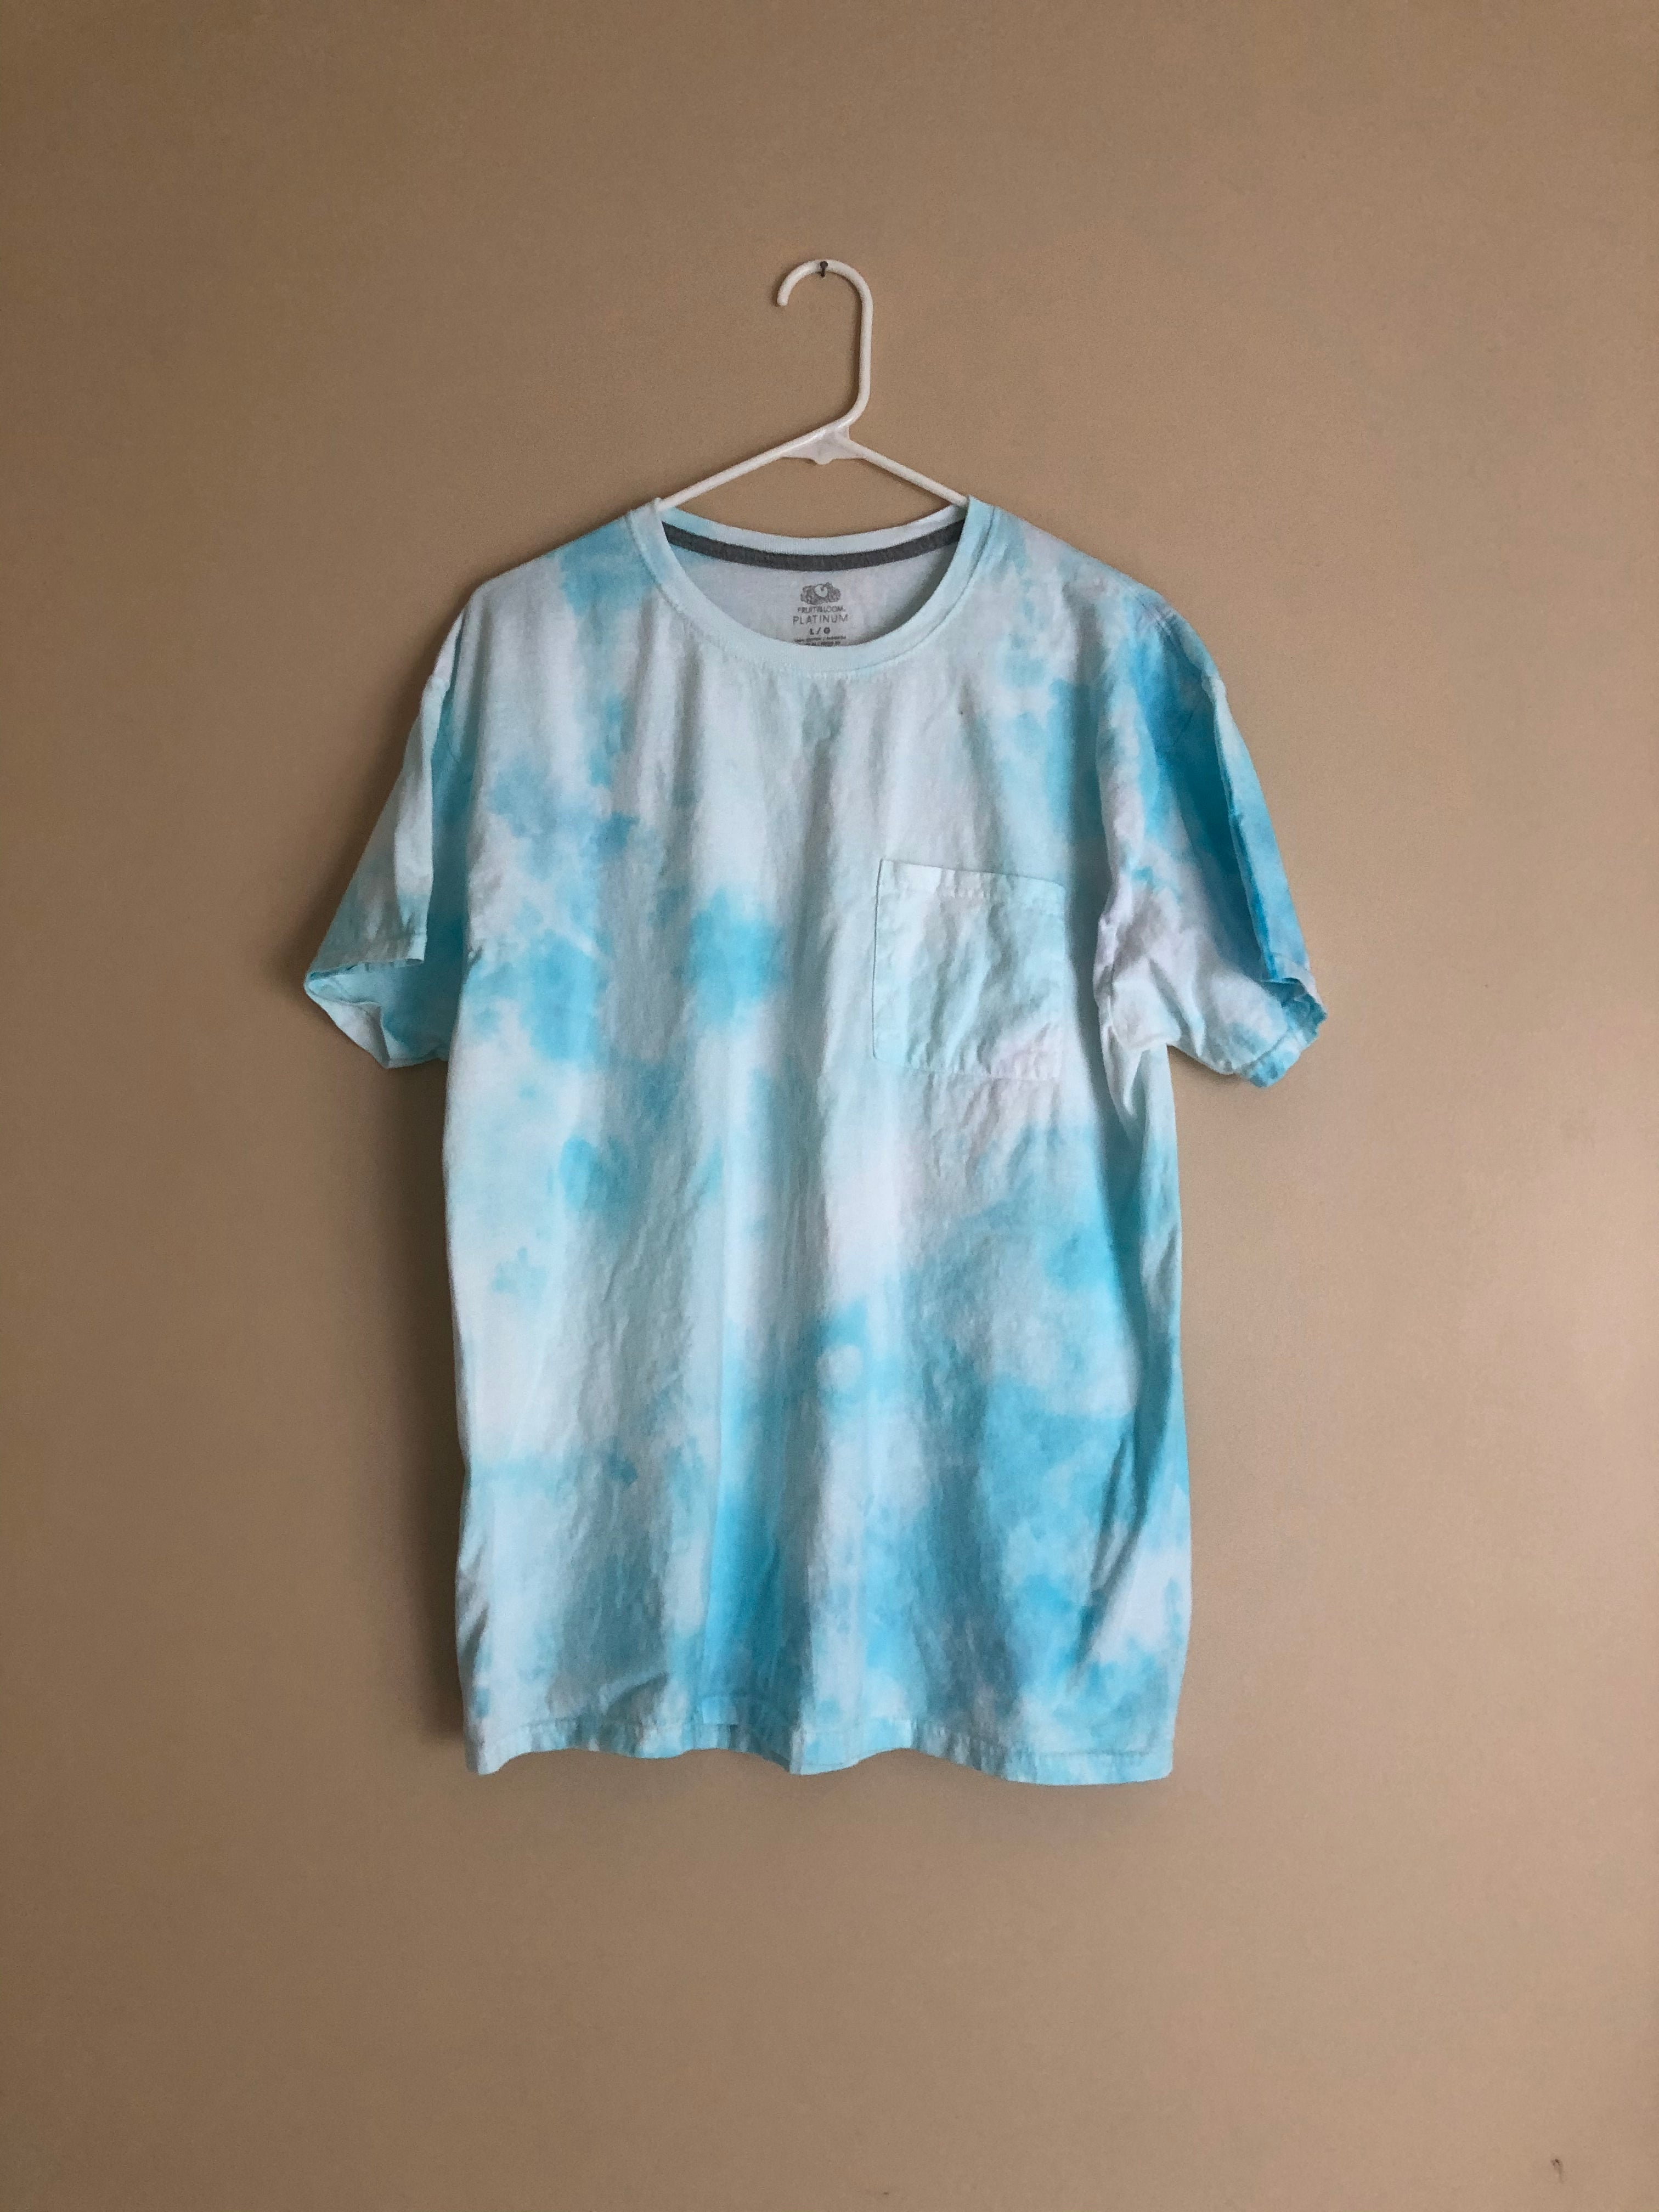 Iced Tie Dye Basic Tee - Blue Clouds - L